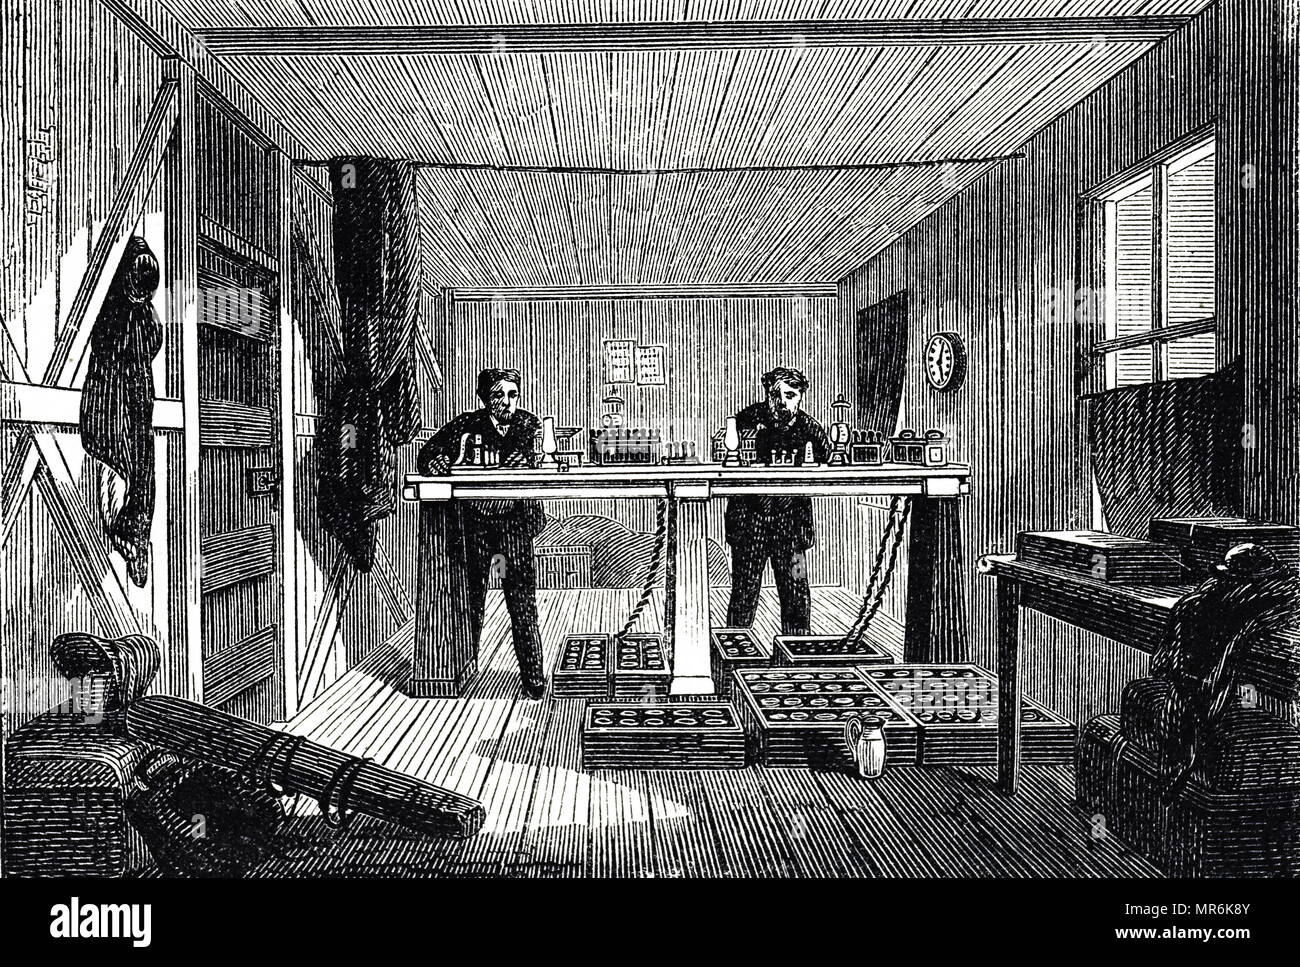 Engraving depicting messages being sent through the Atlantic Telegraph system from 'The Great Eastern' in the instrument room at Valencia. Dated 19th century - Stock Image